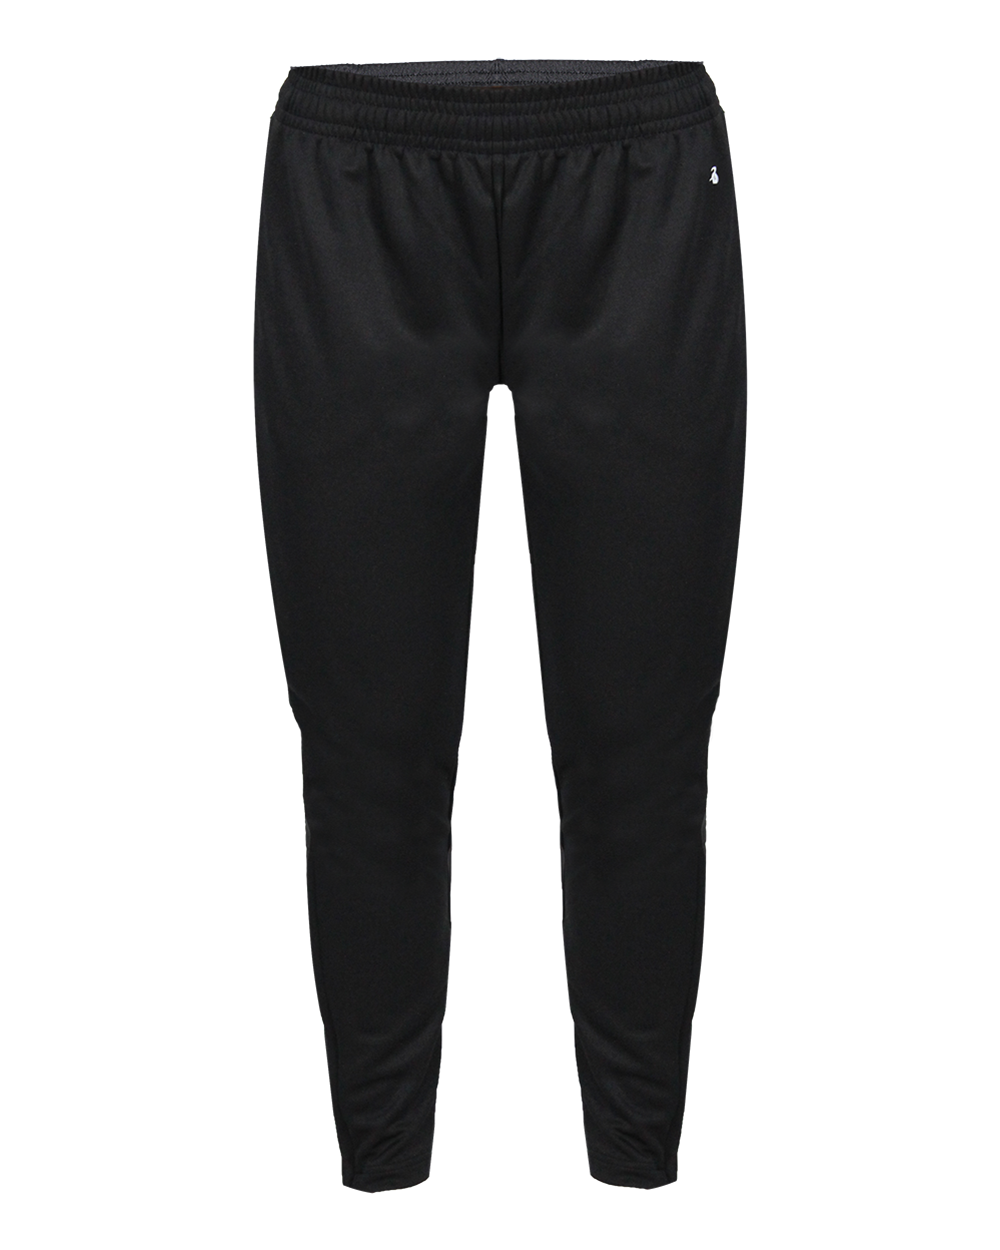 Trainer Women's Pant - Black